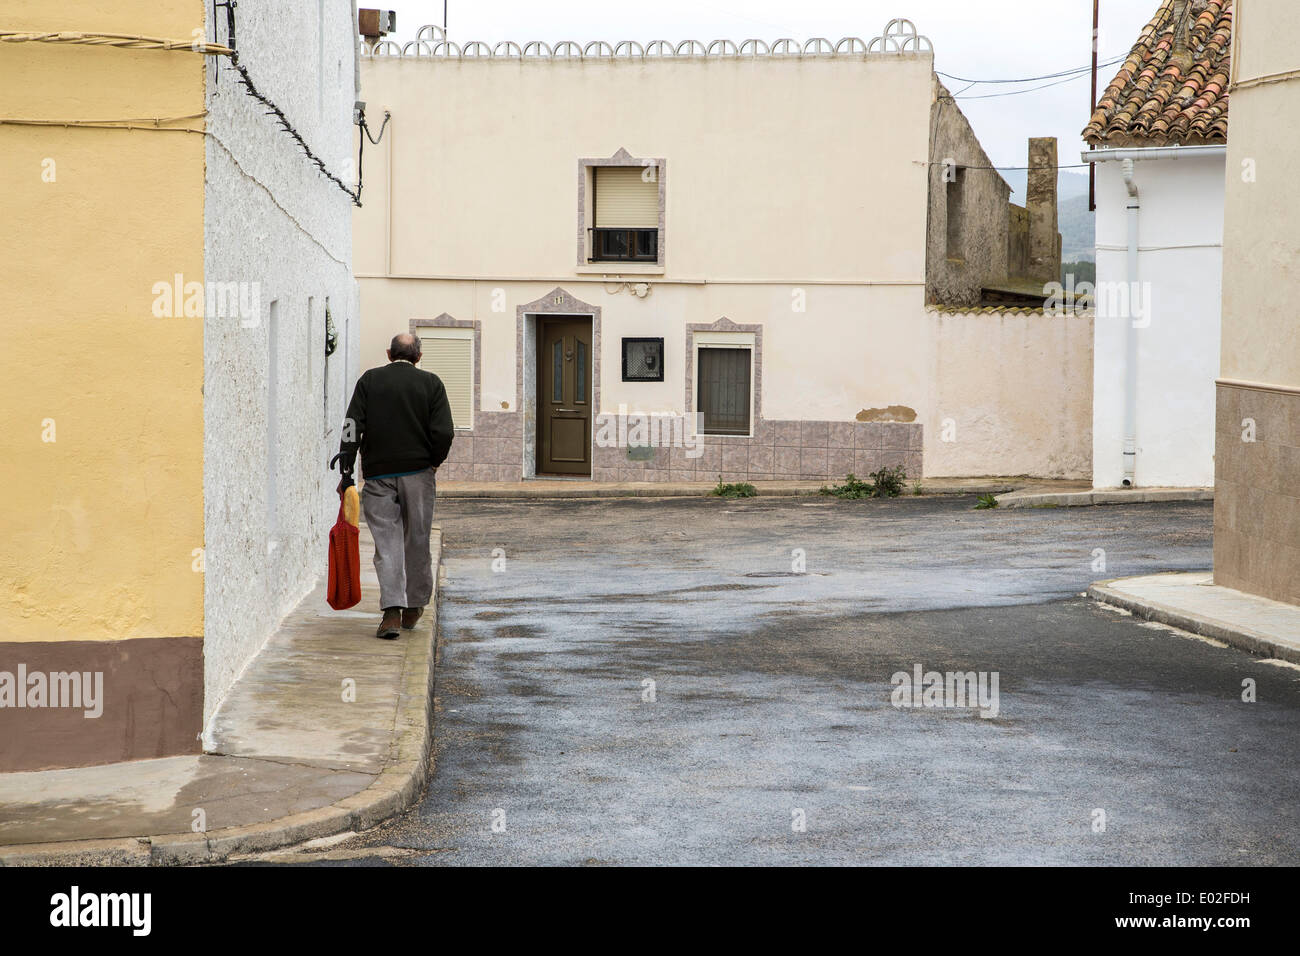 Passerby walking down a street, La Portera, Province of Valencia, Spain - Stock Image